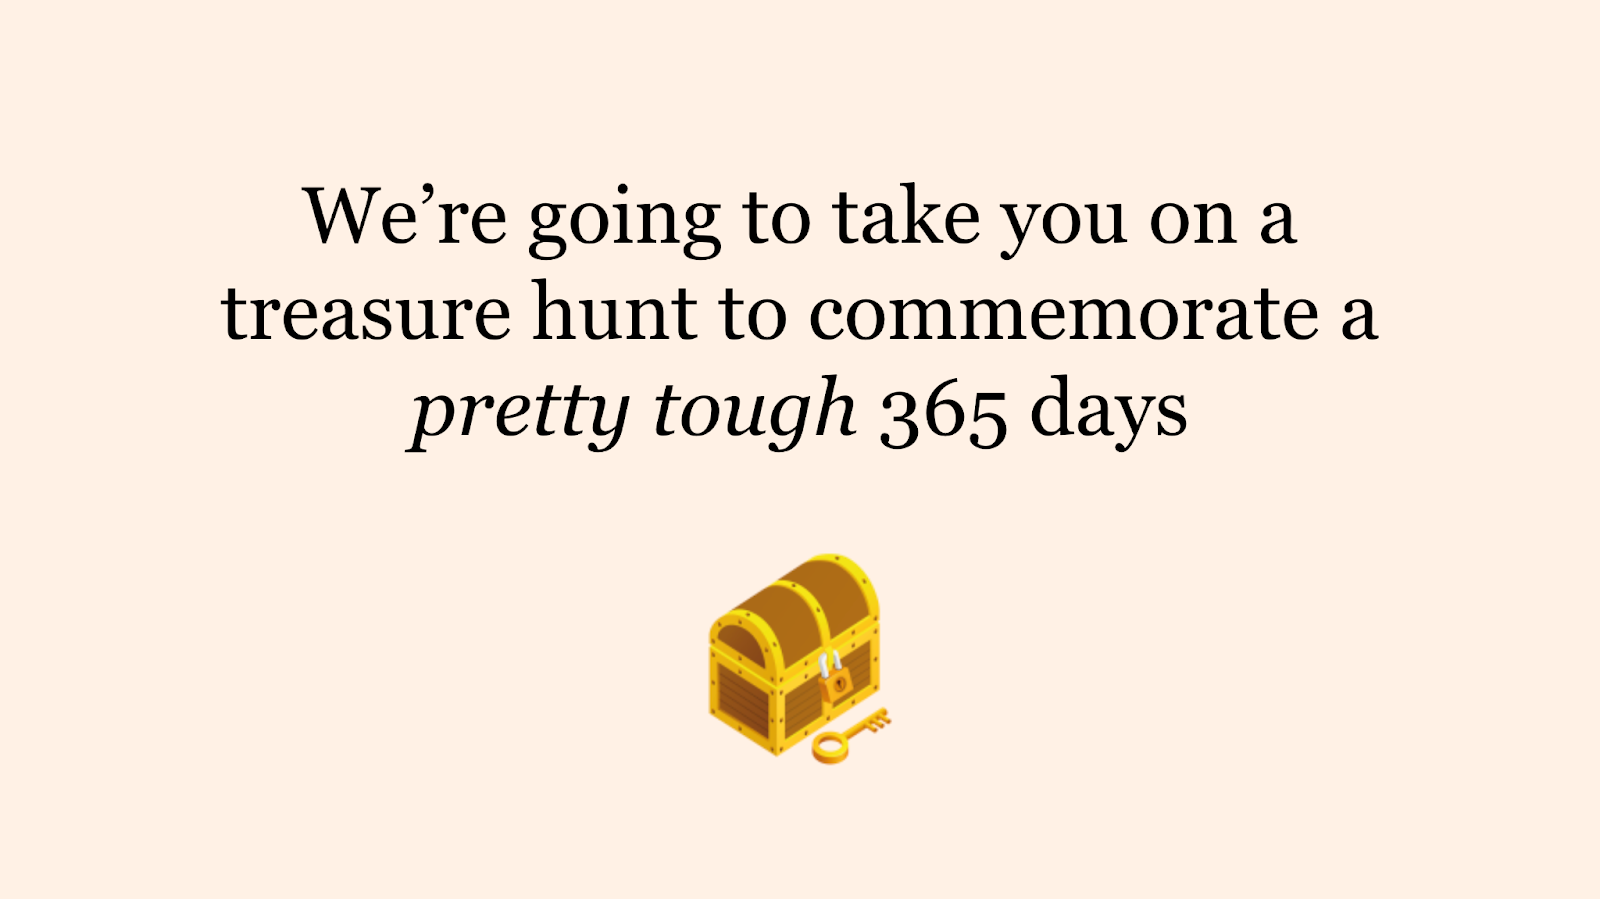 """A slide from our presentation, it contains an image of a treasure chest and the words """"We're going to take you on a treasure hunt to commemorate a pretty tough 365 days"""""""